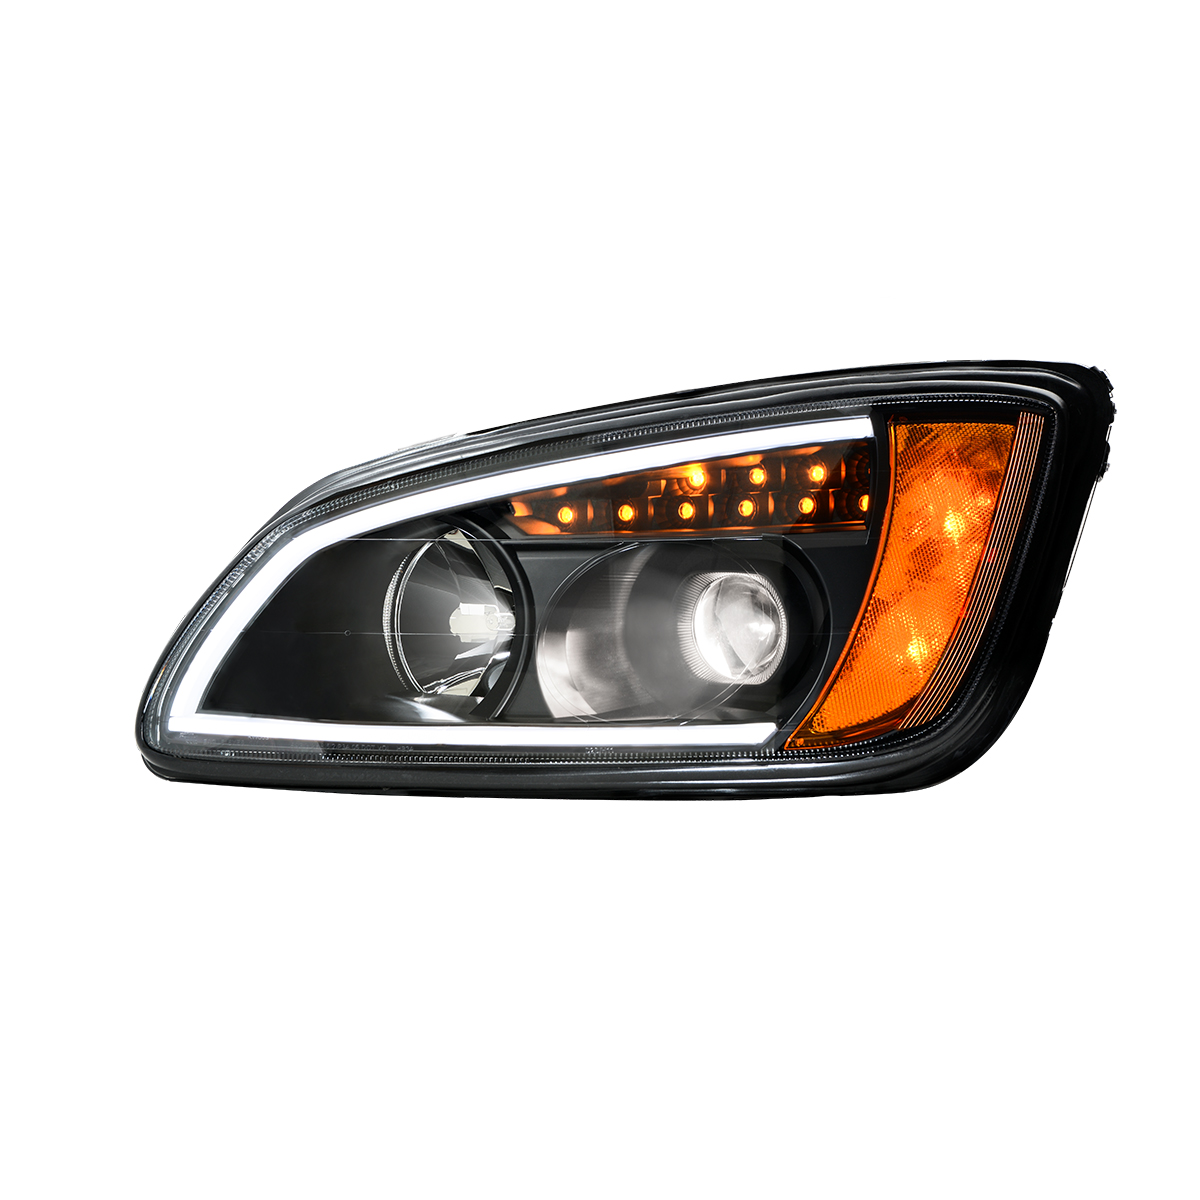 Kenworth T660 Matte Black Projection Headlight w/ LED Turn Signal & White LED Running Light